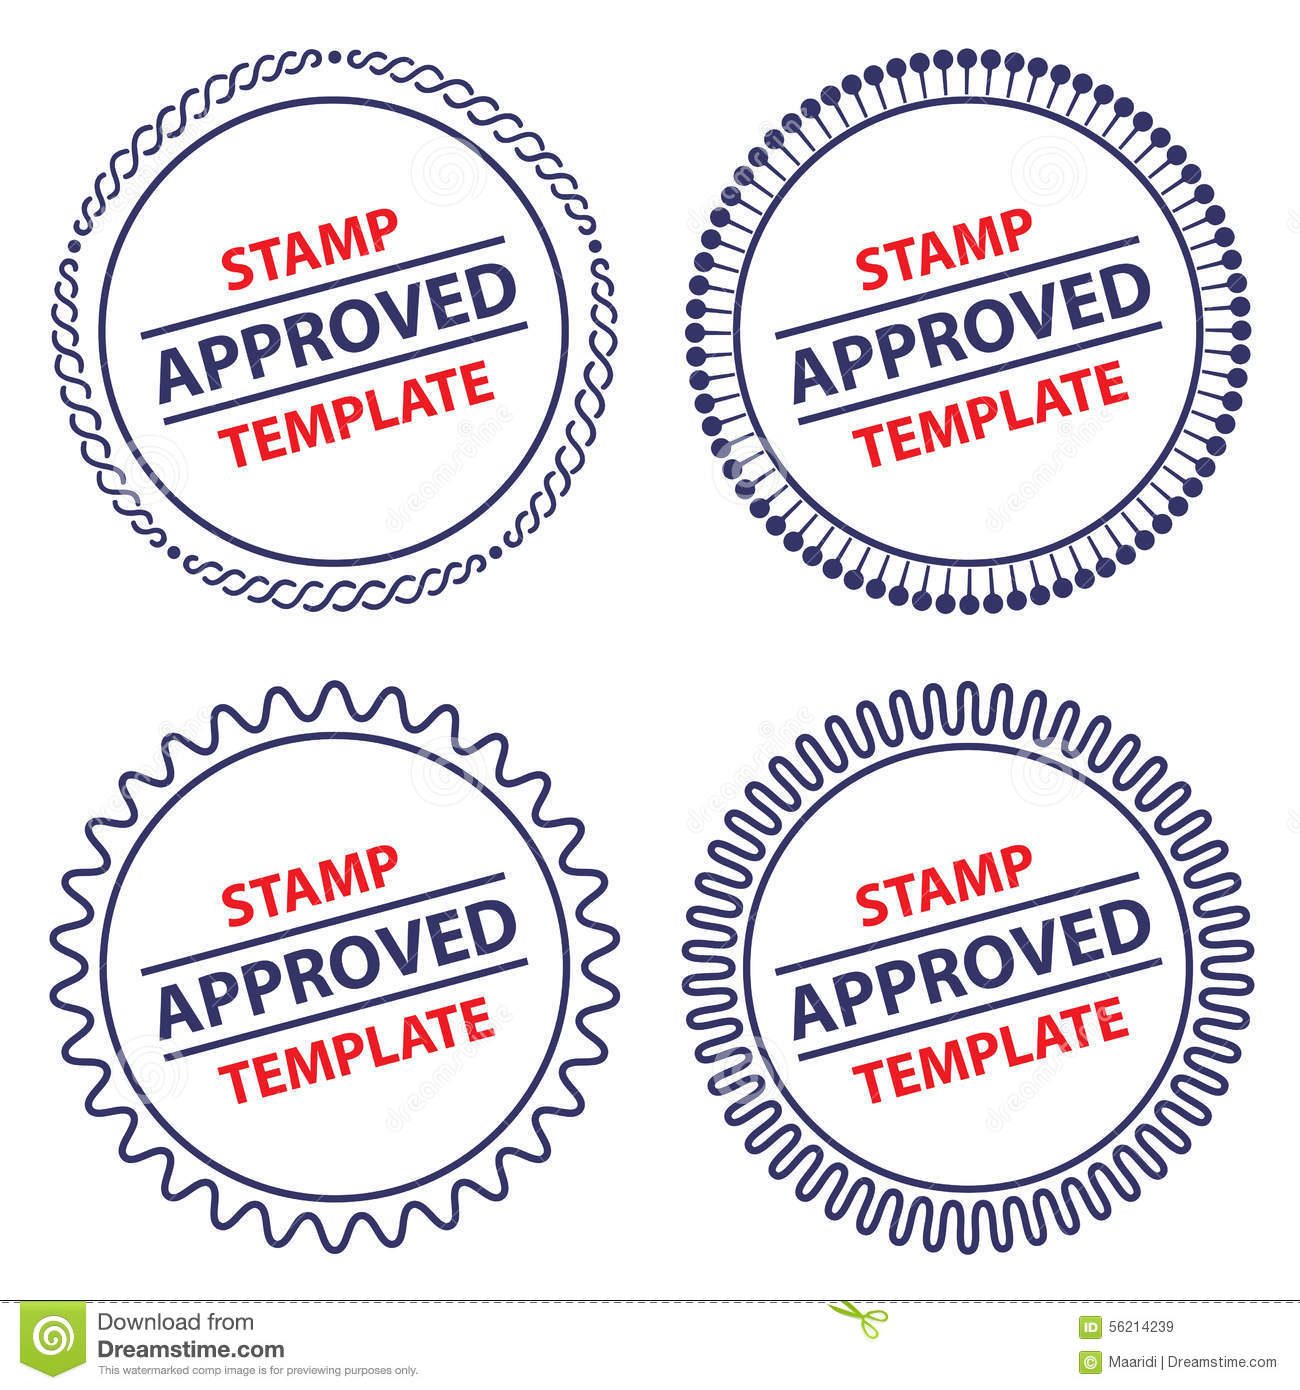 circle stamp template stock vector image of agreement 56214239. Black Bedroom Furniture Sets. Home Design Ideas